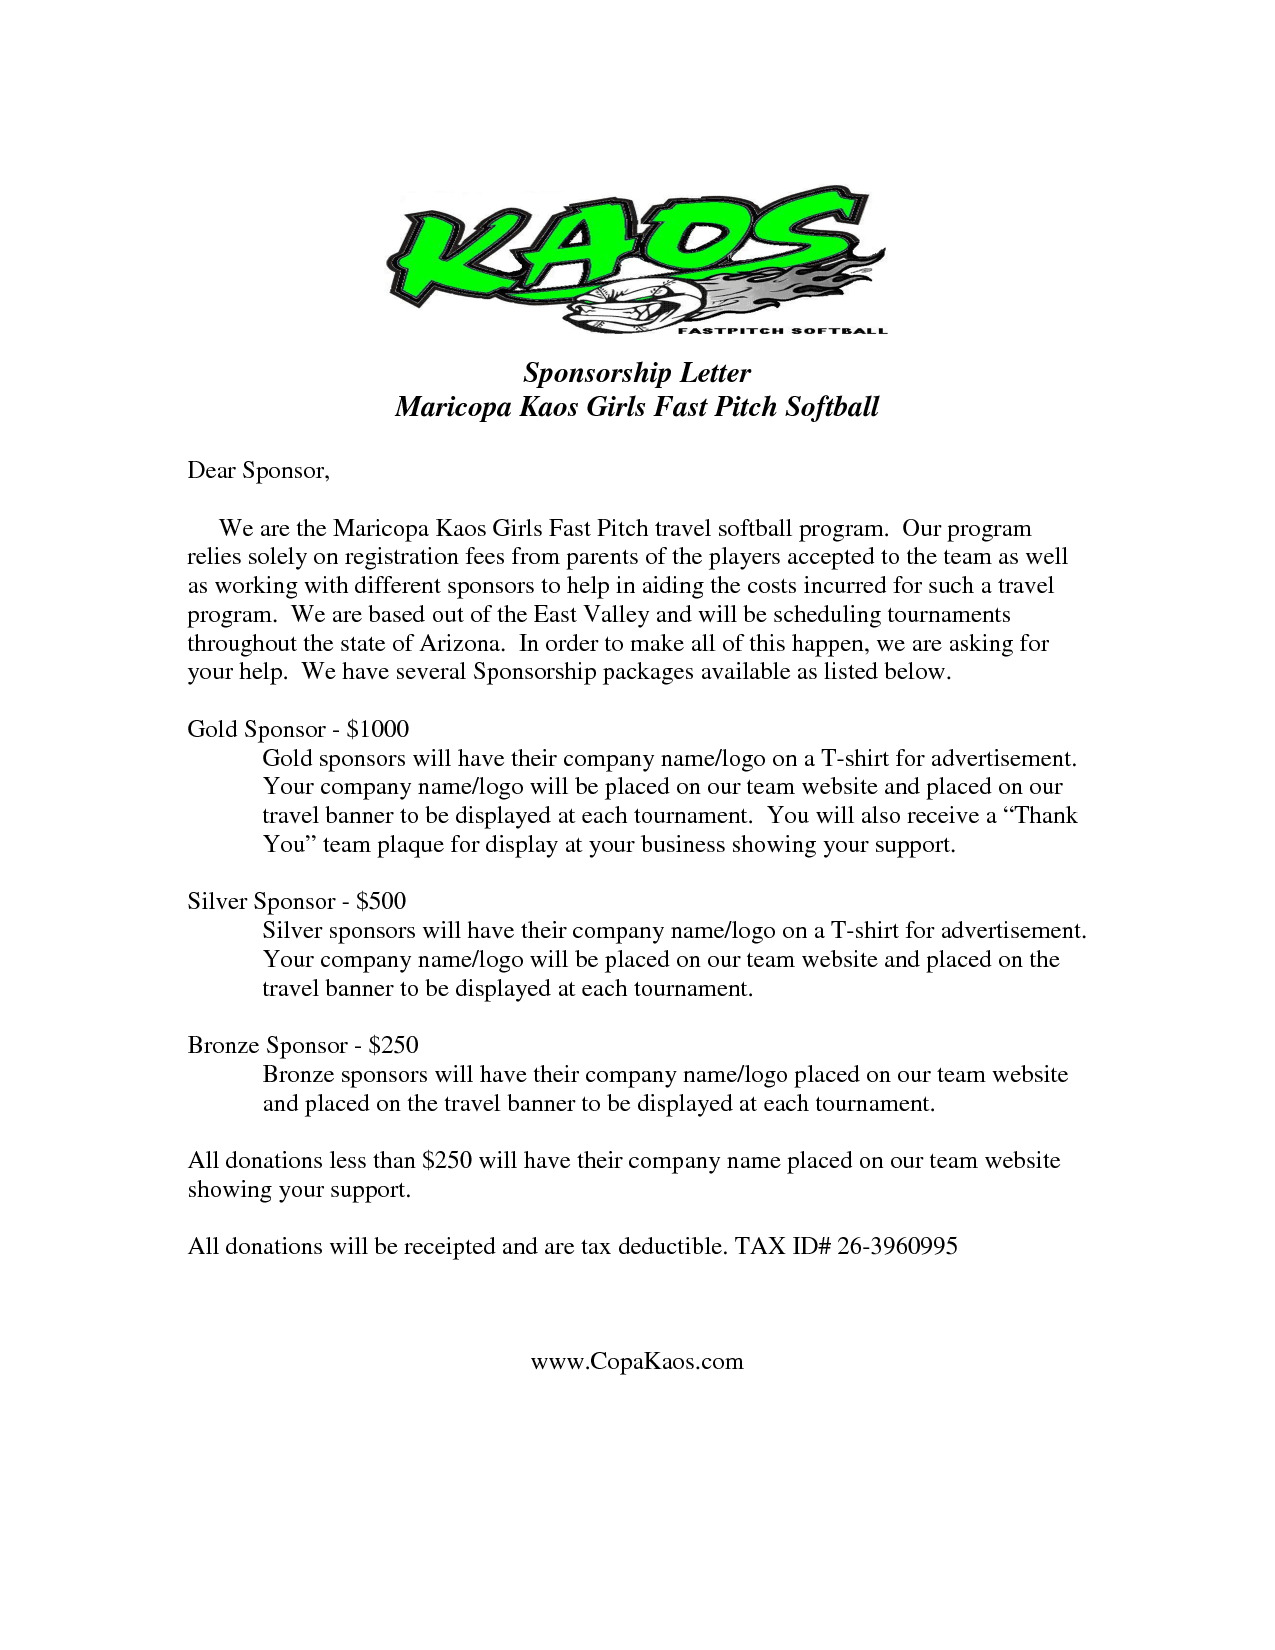 School Donation Request Letter Template - Image Result for Sample Sponsor Request Letter Donation